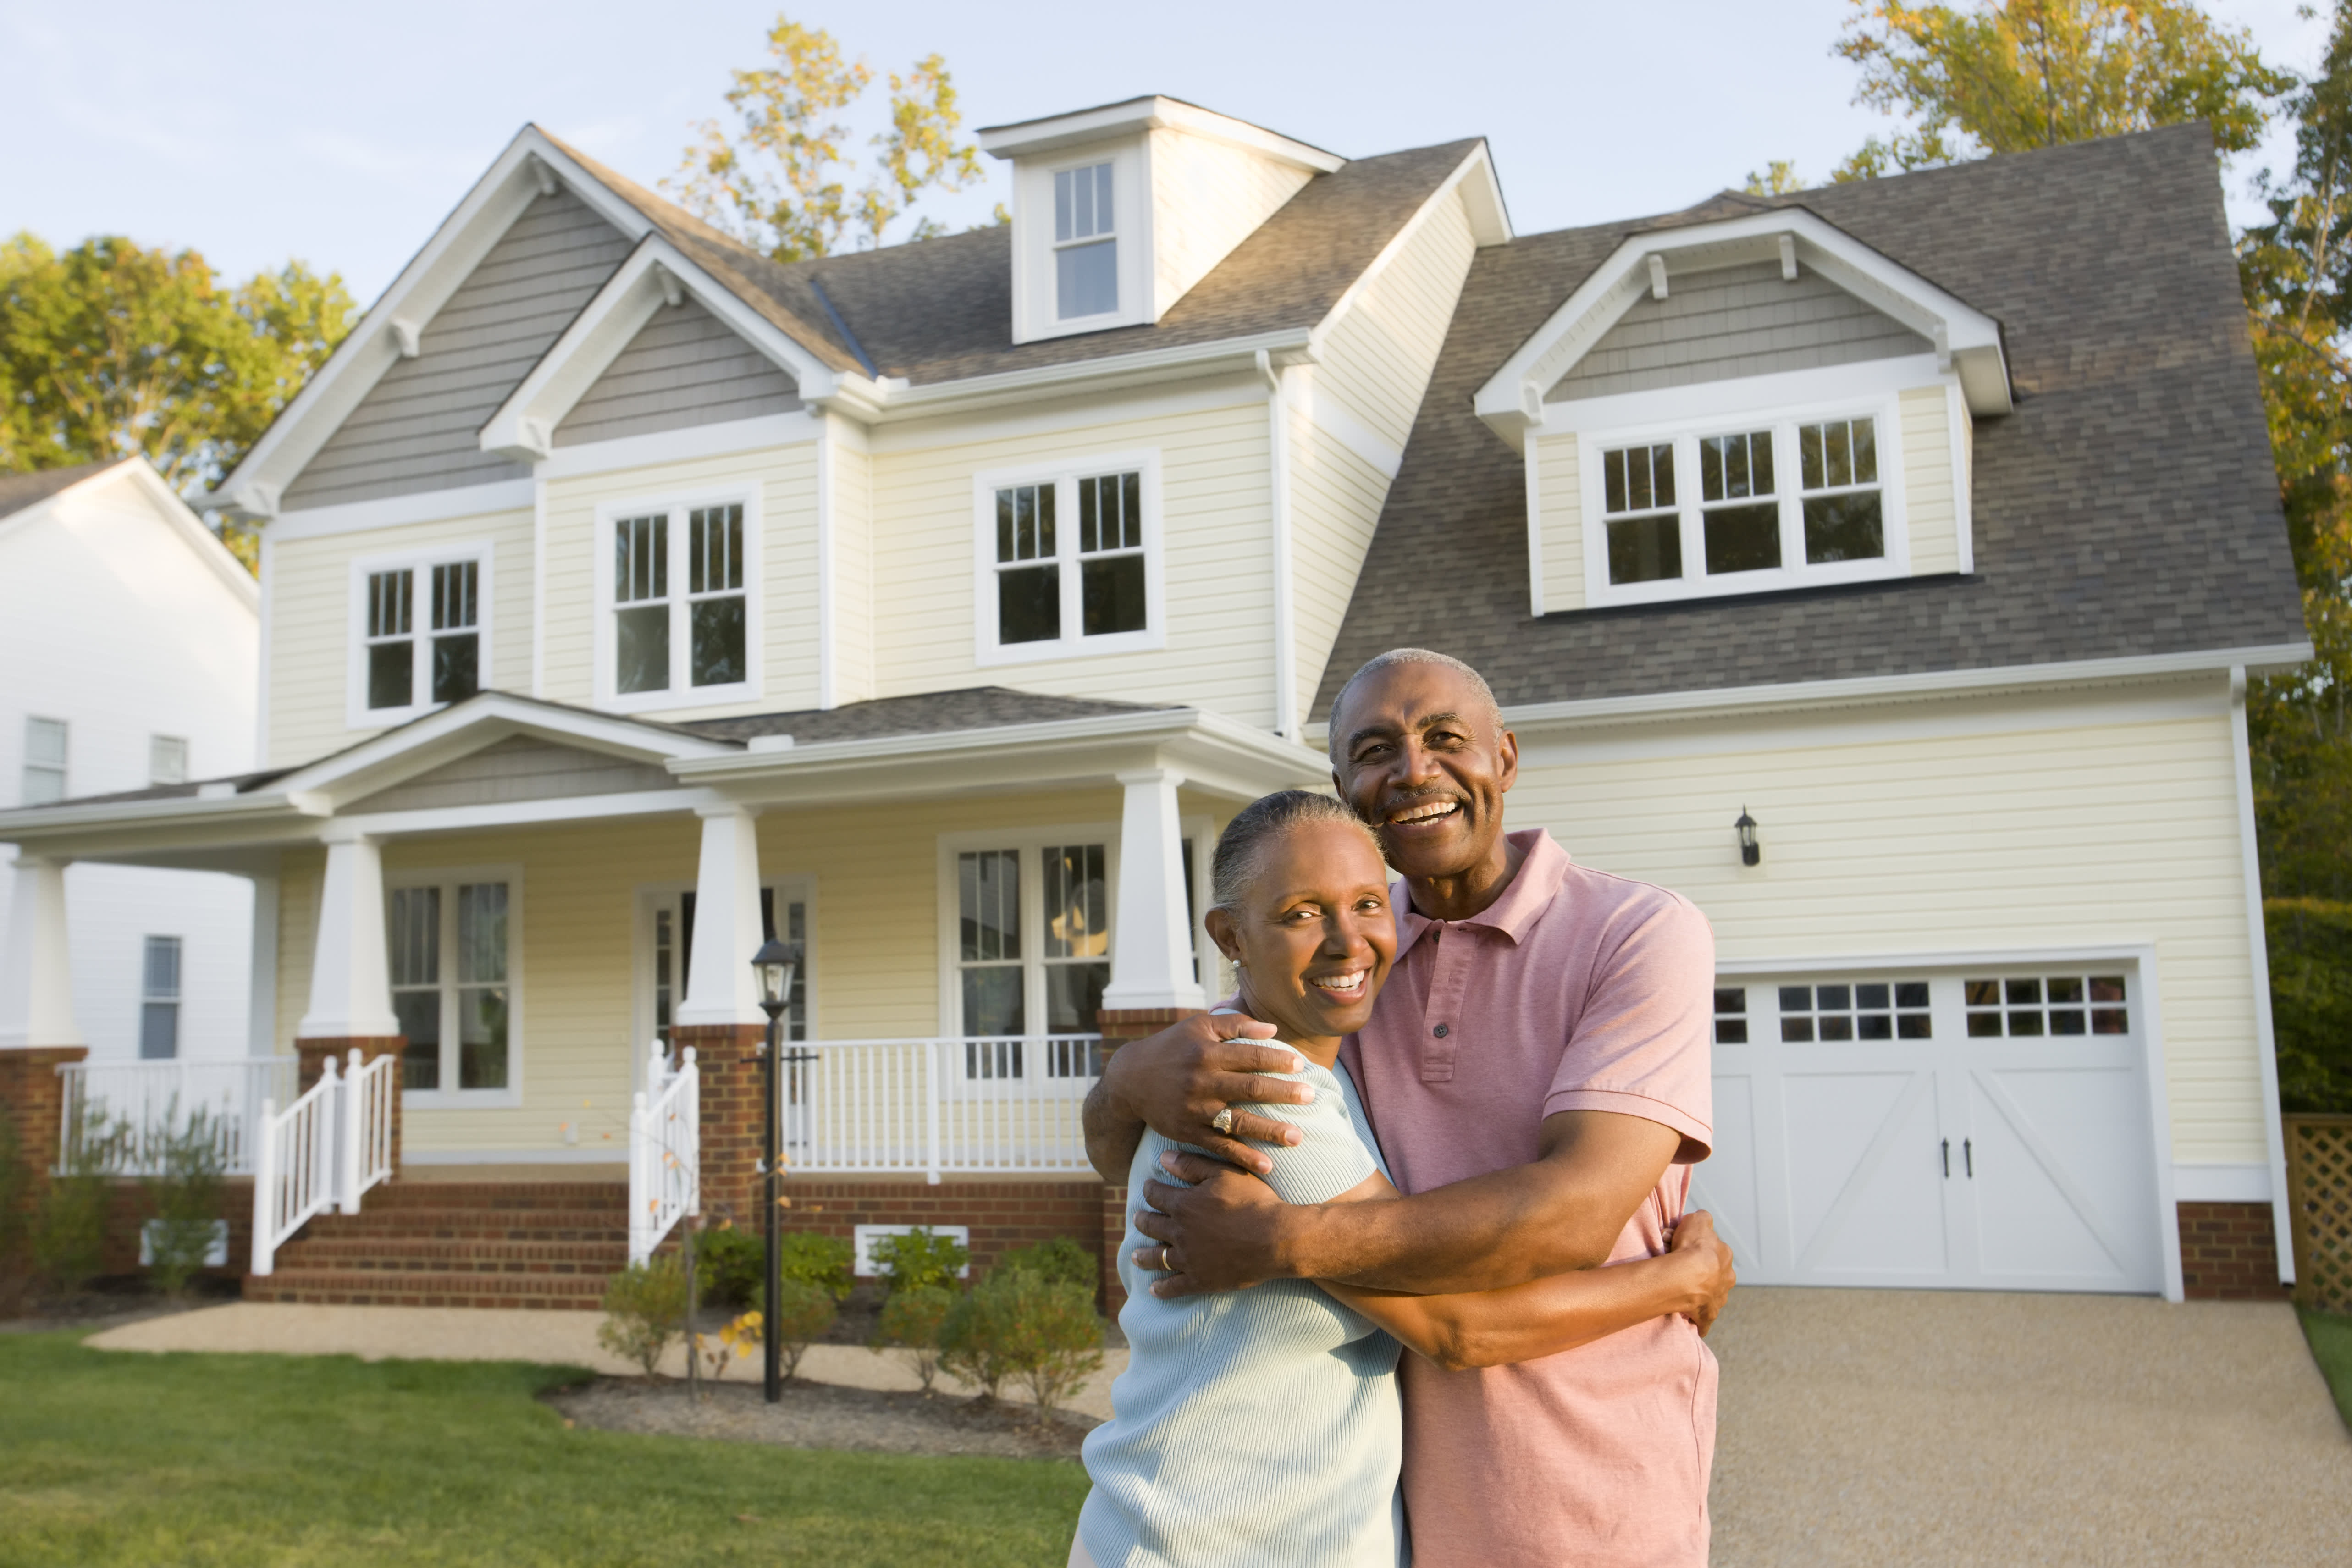 Op-ed: More boomers are choosing to 'upsize' their homes in retirement